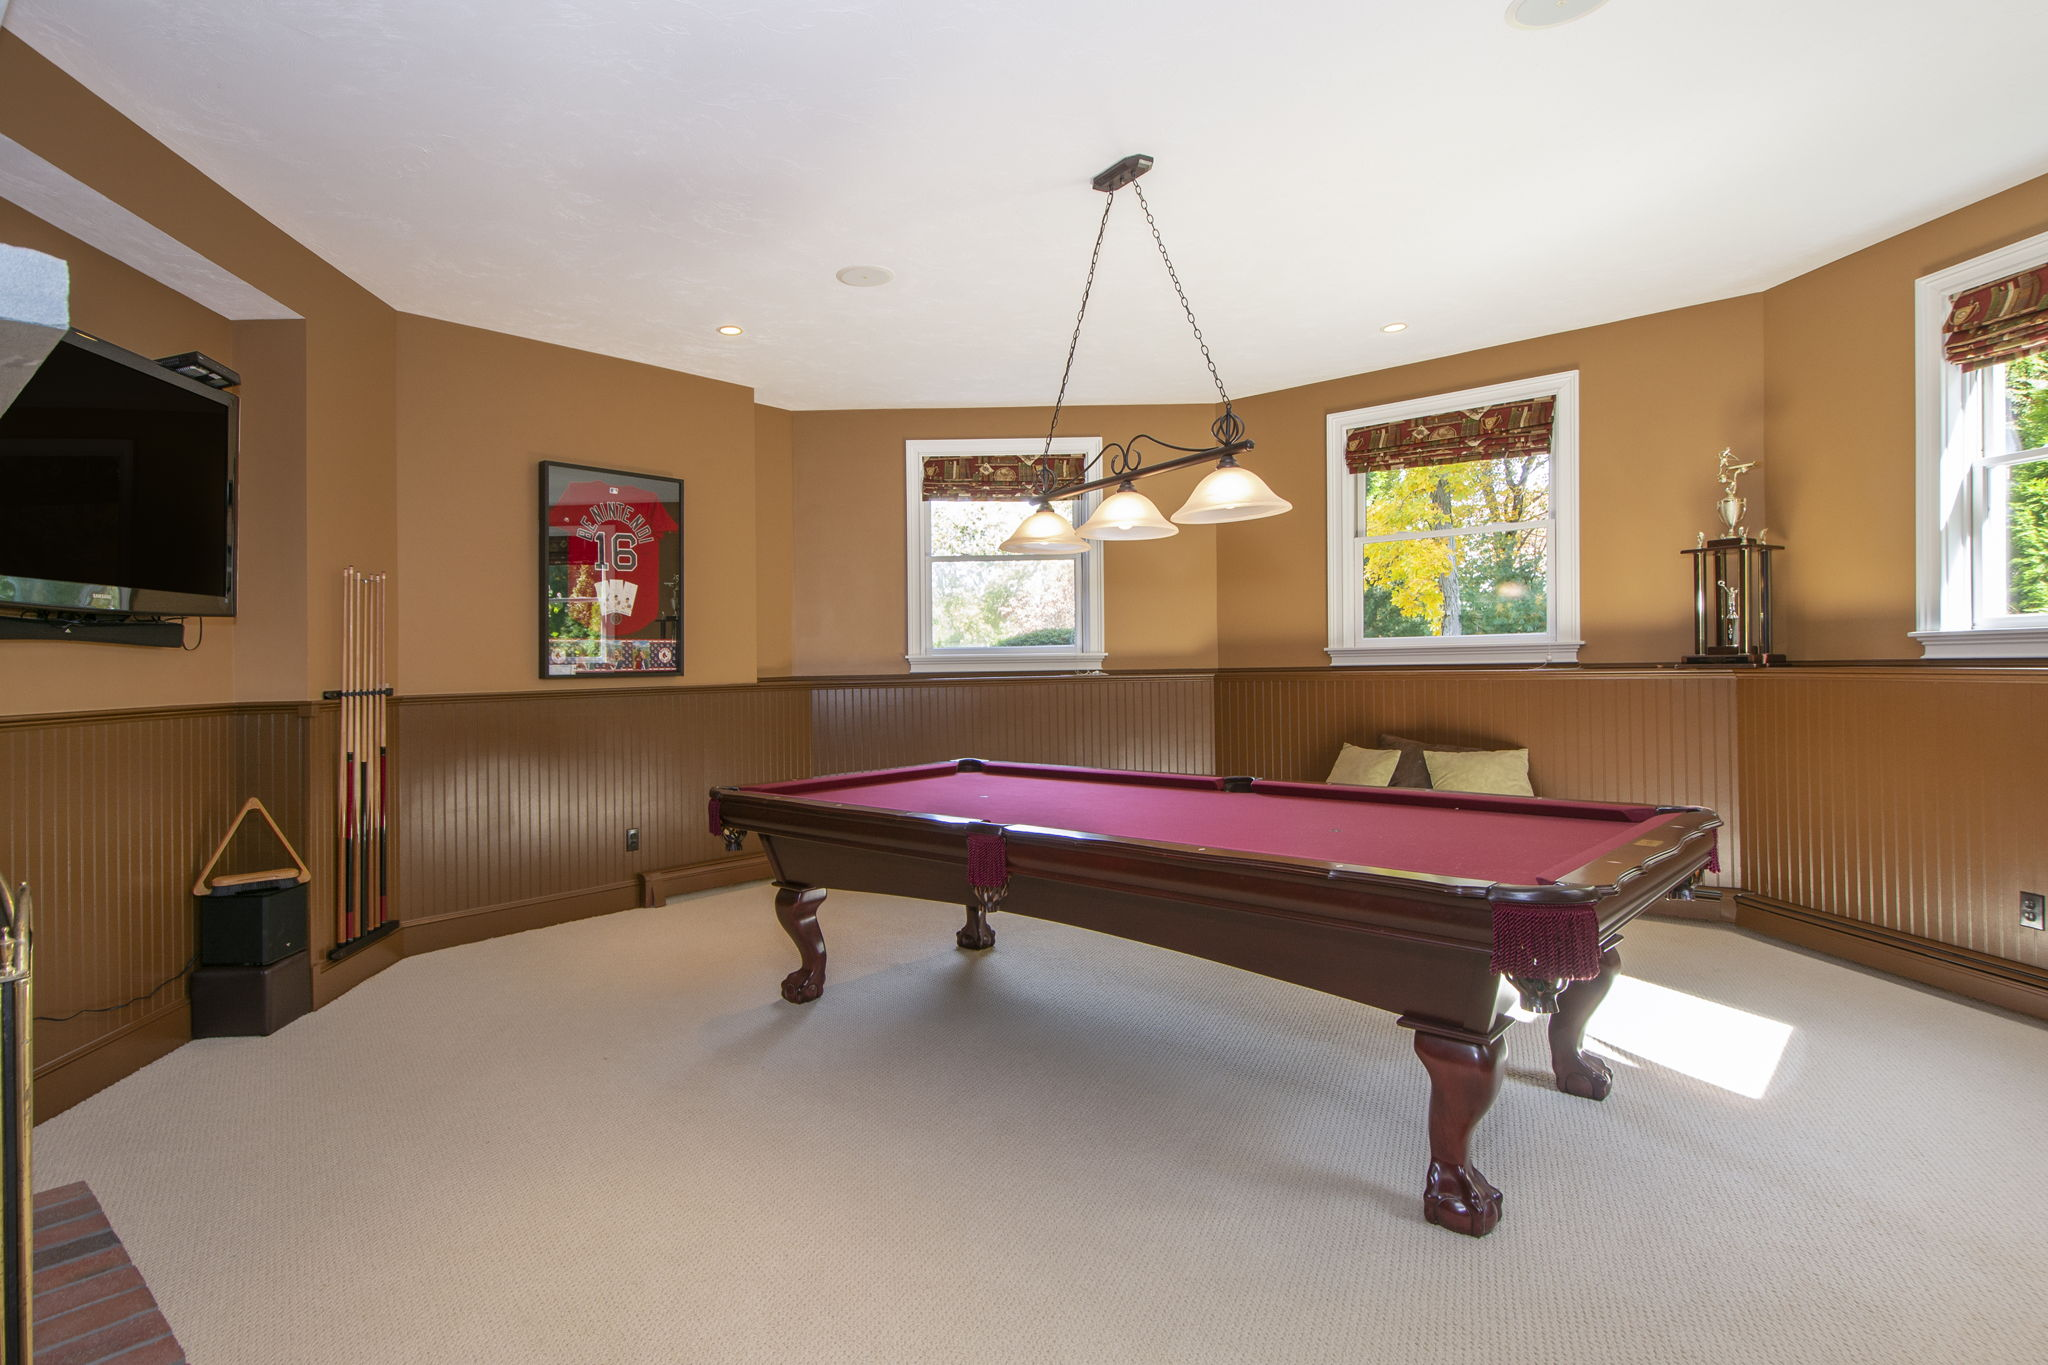 Lower Level - Billiards Room